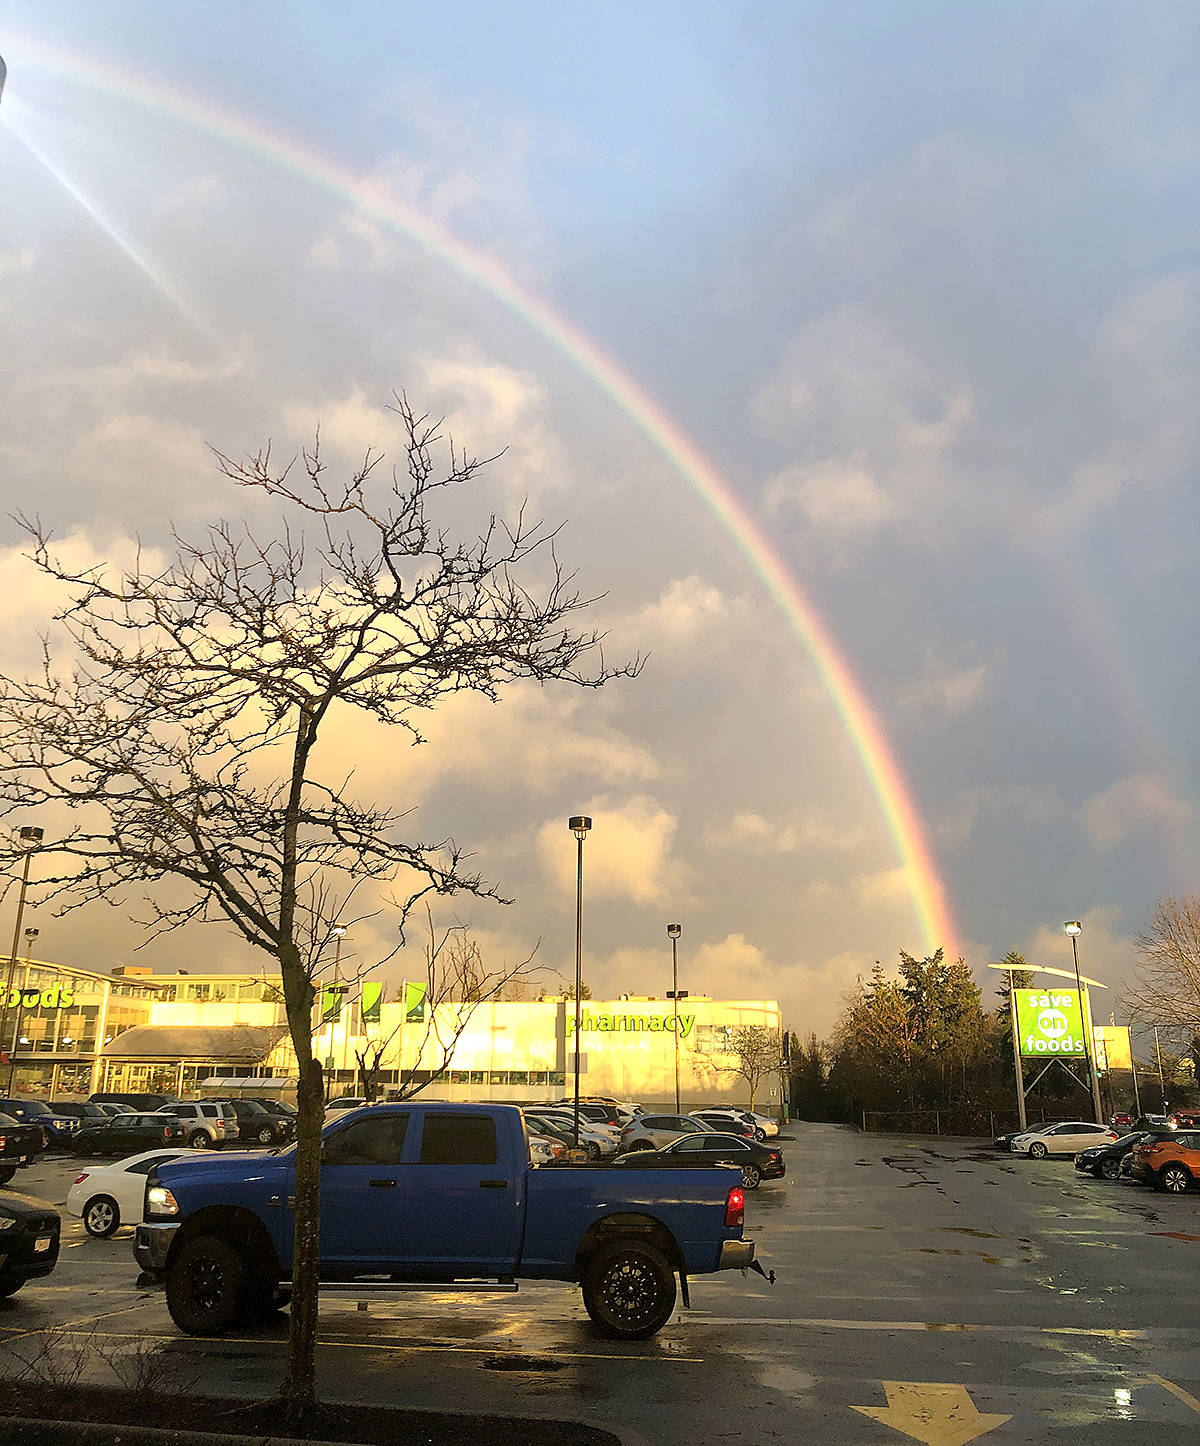 Hyun Jung Nam (Chelsea) also shared a picture of Tuesday's rainbow, her's was captured from in front of the Save-On-Foods on 64th Avenue in Willowbrook. (Special to Langley Advance Times)